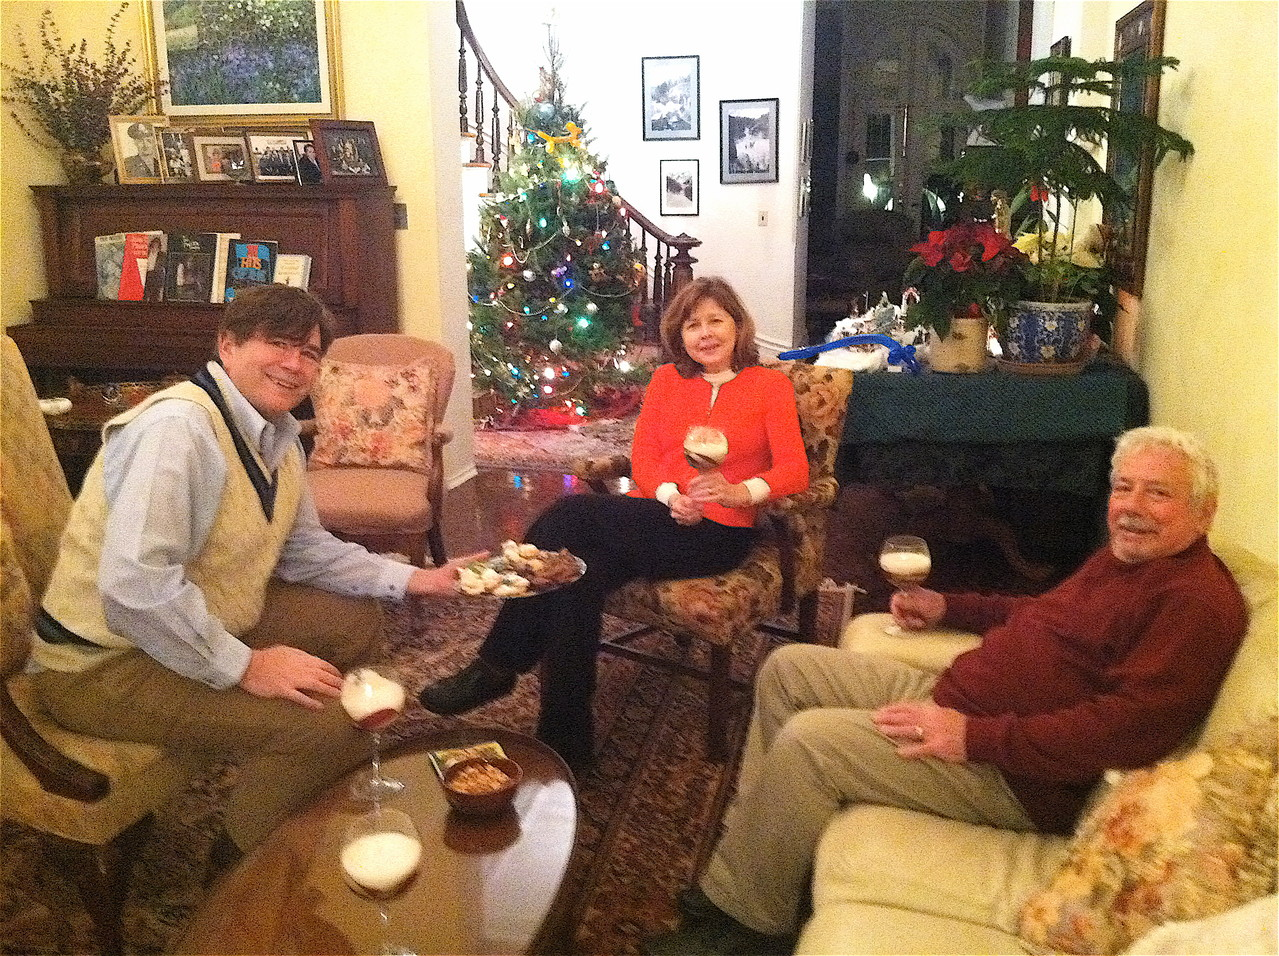 Bringing in the New Year, 2013 - John, Barbara, and Don